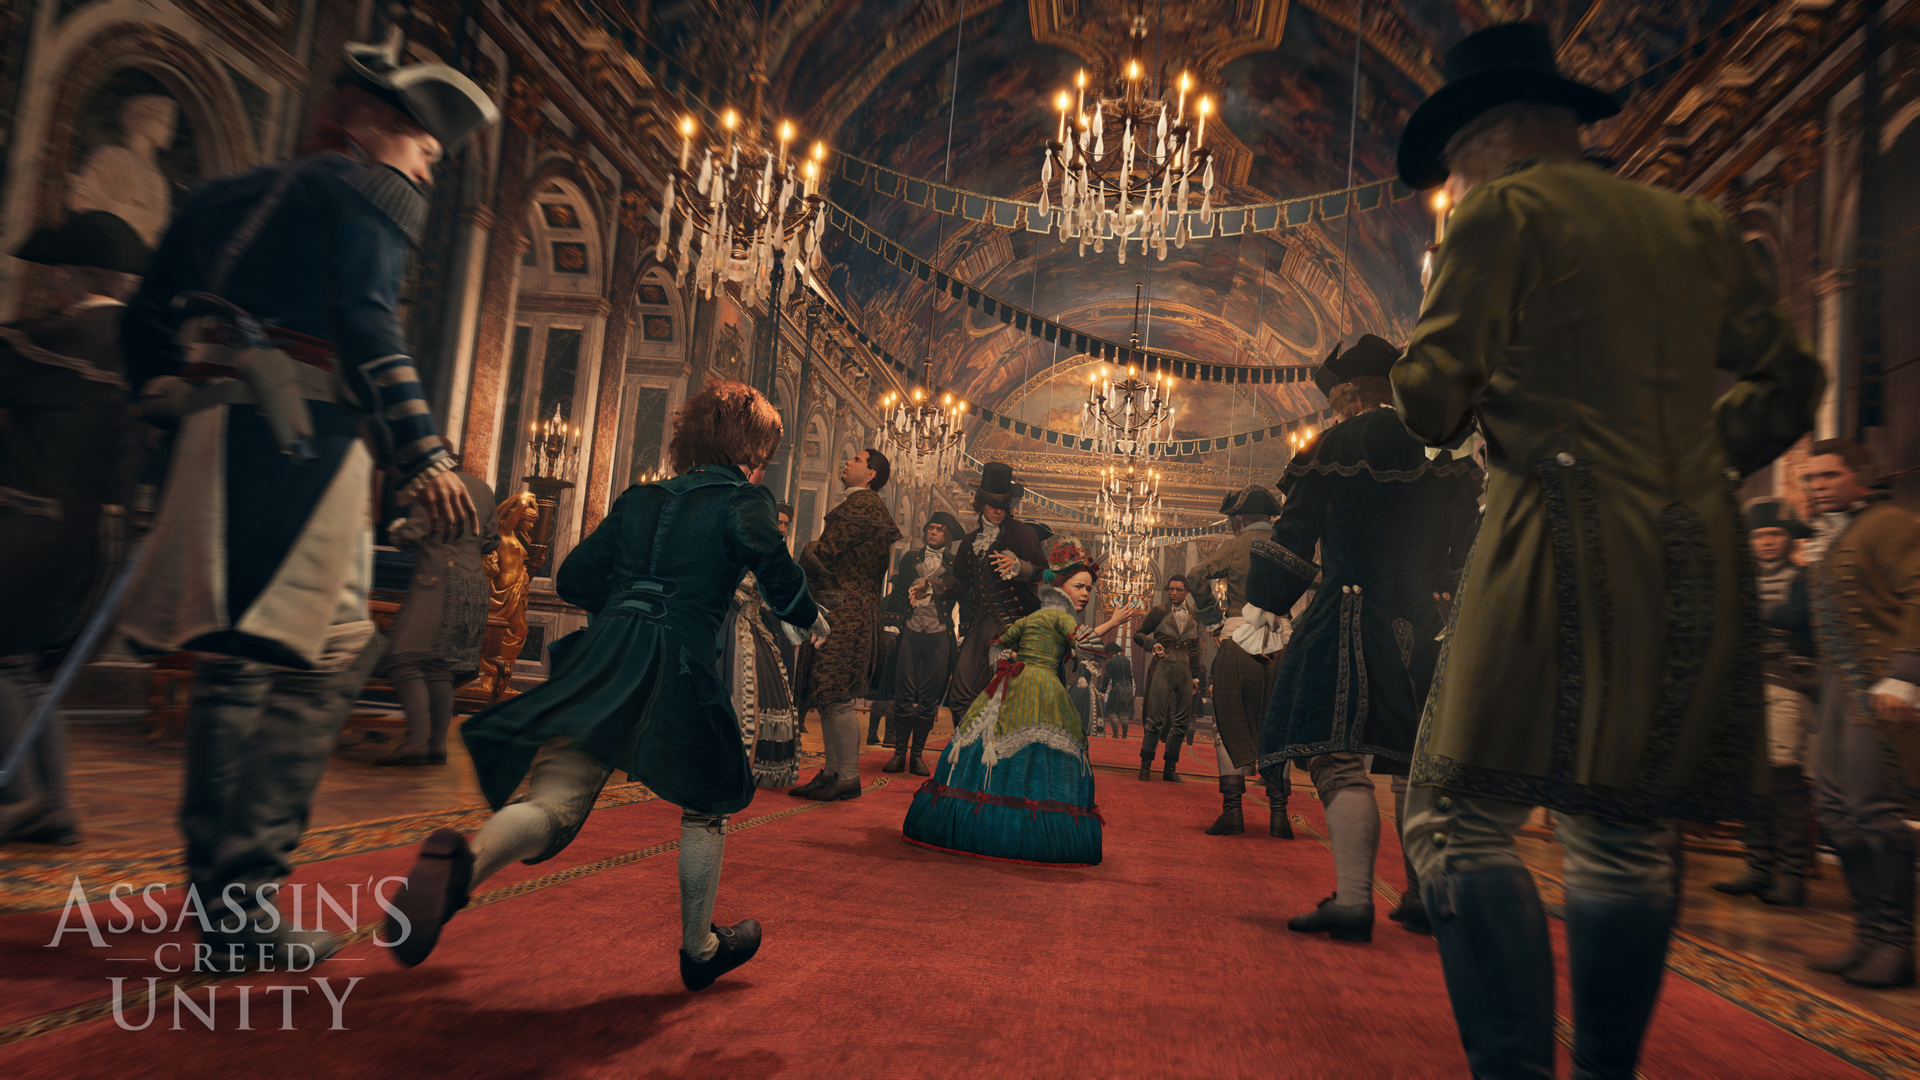 [FIXO] Assassin's Creed Unity Assassin%27s_Creed_Unity_ArnoAndElise_Children_166313